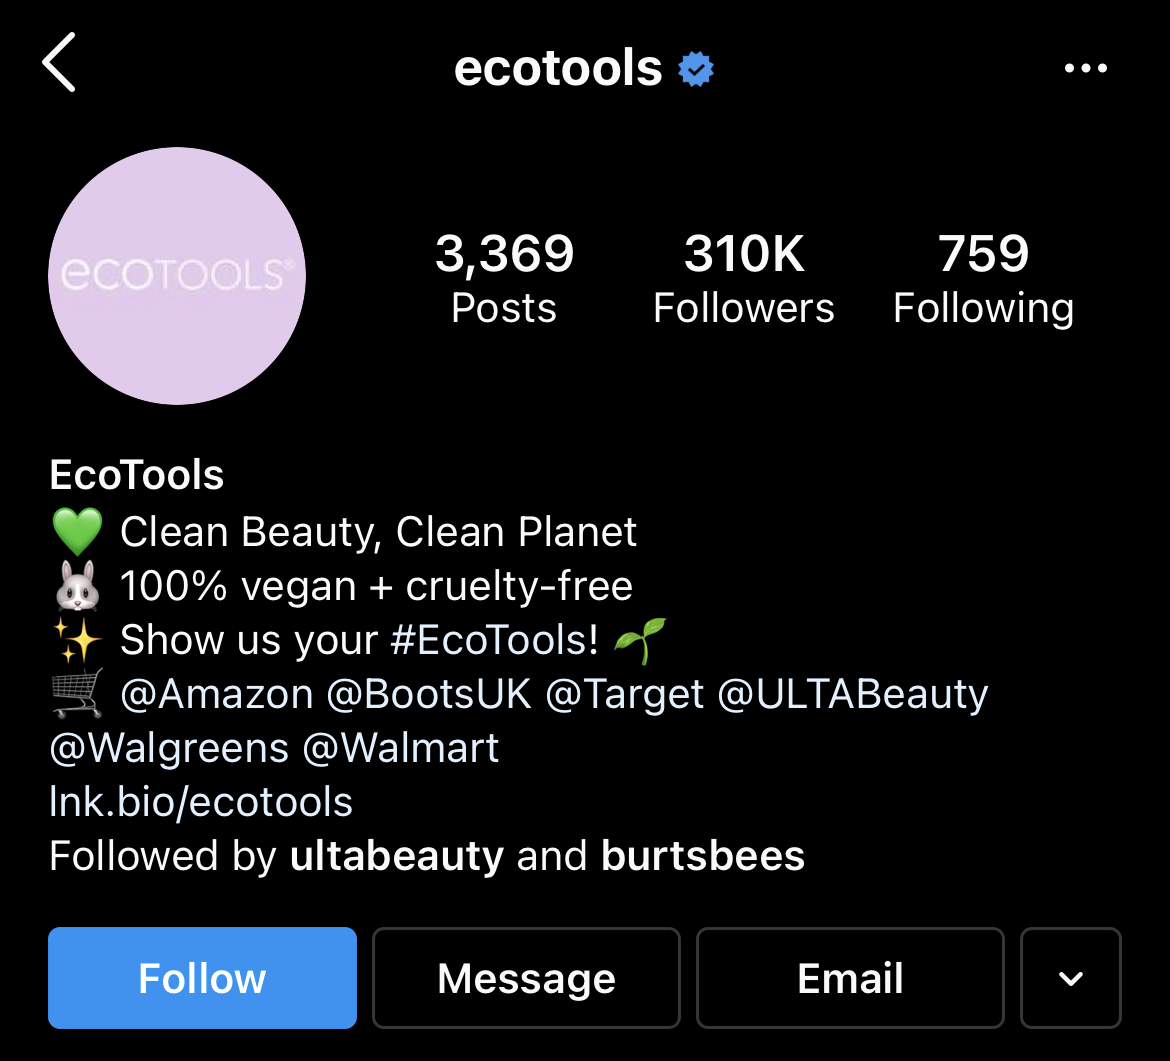 ecotools CTA in bio to use branded hashtag